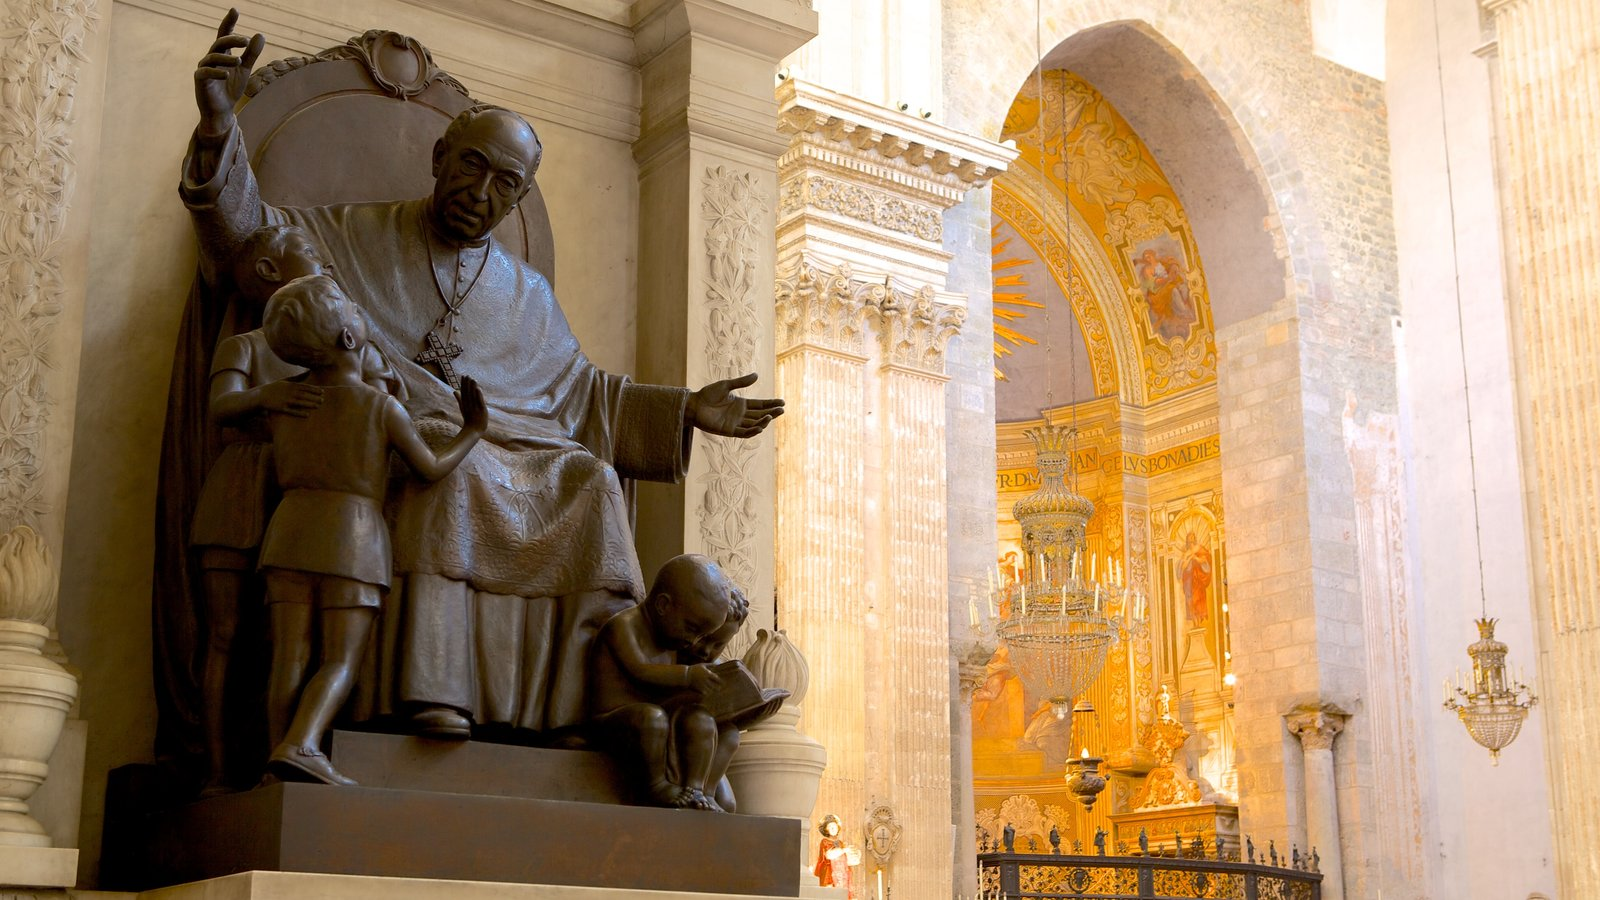 Catania Cathedral showing a statue or sculpture, interior views and a church or cathedral